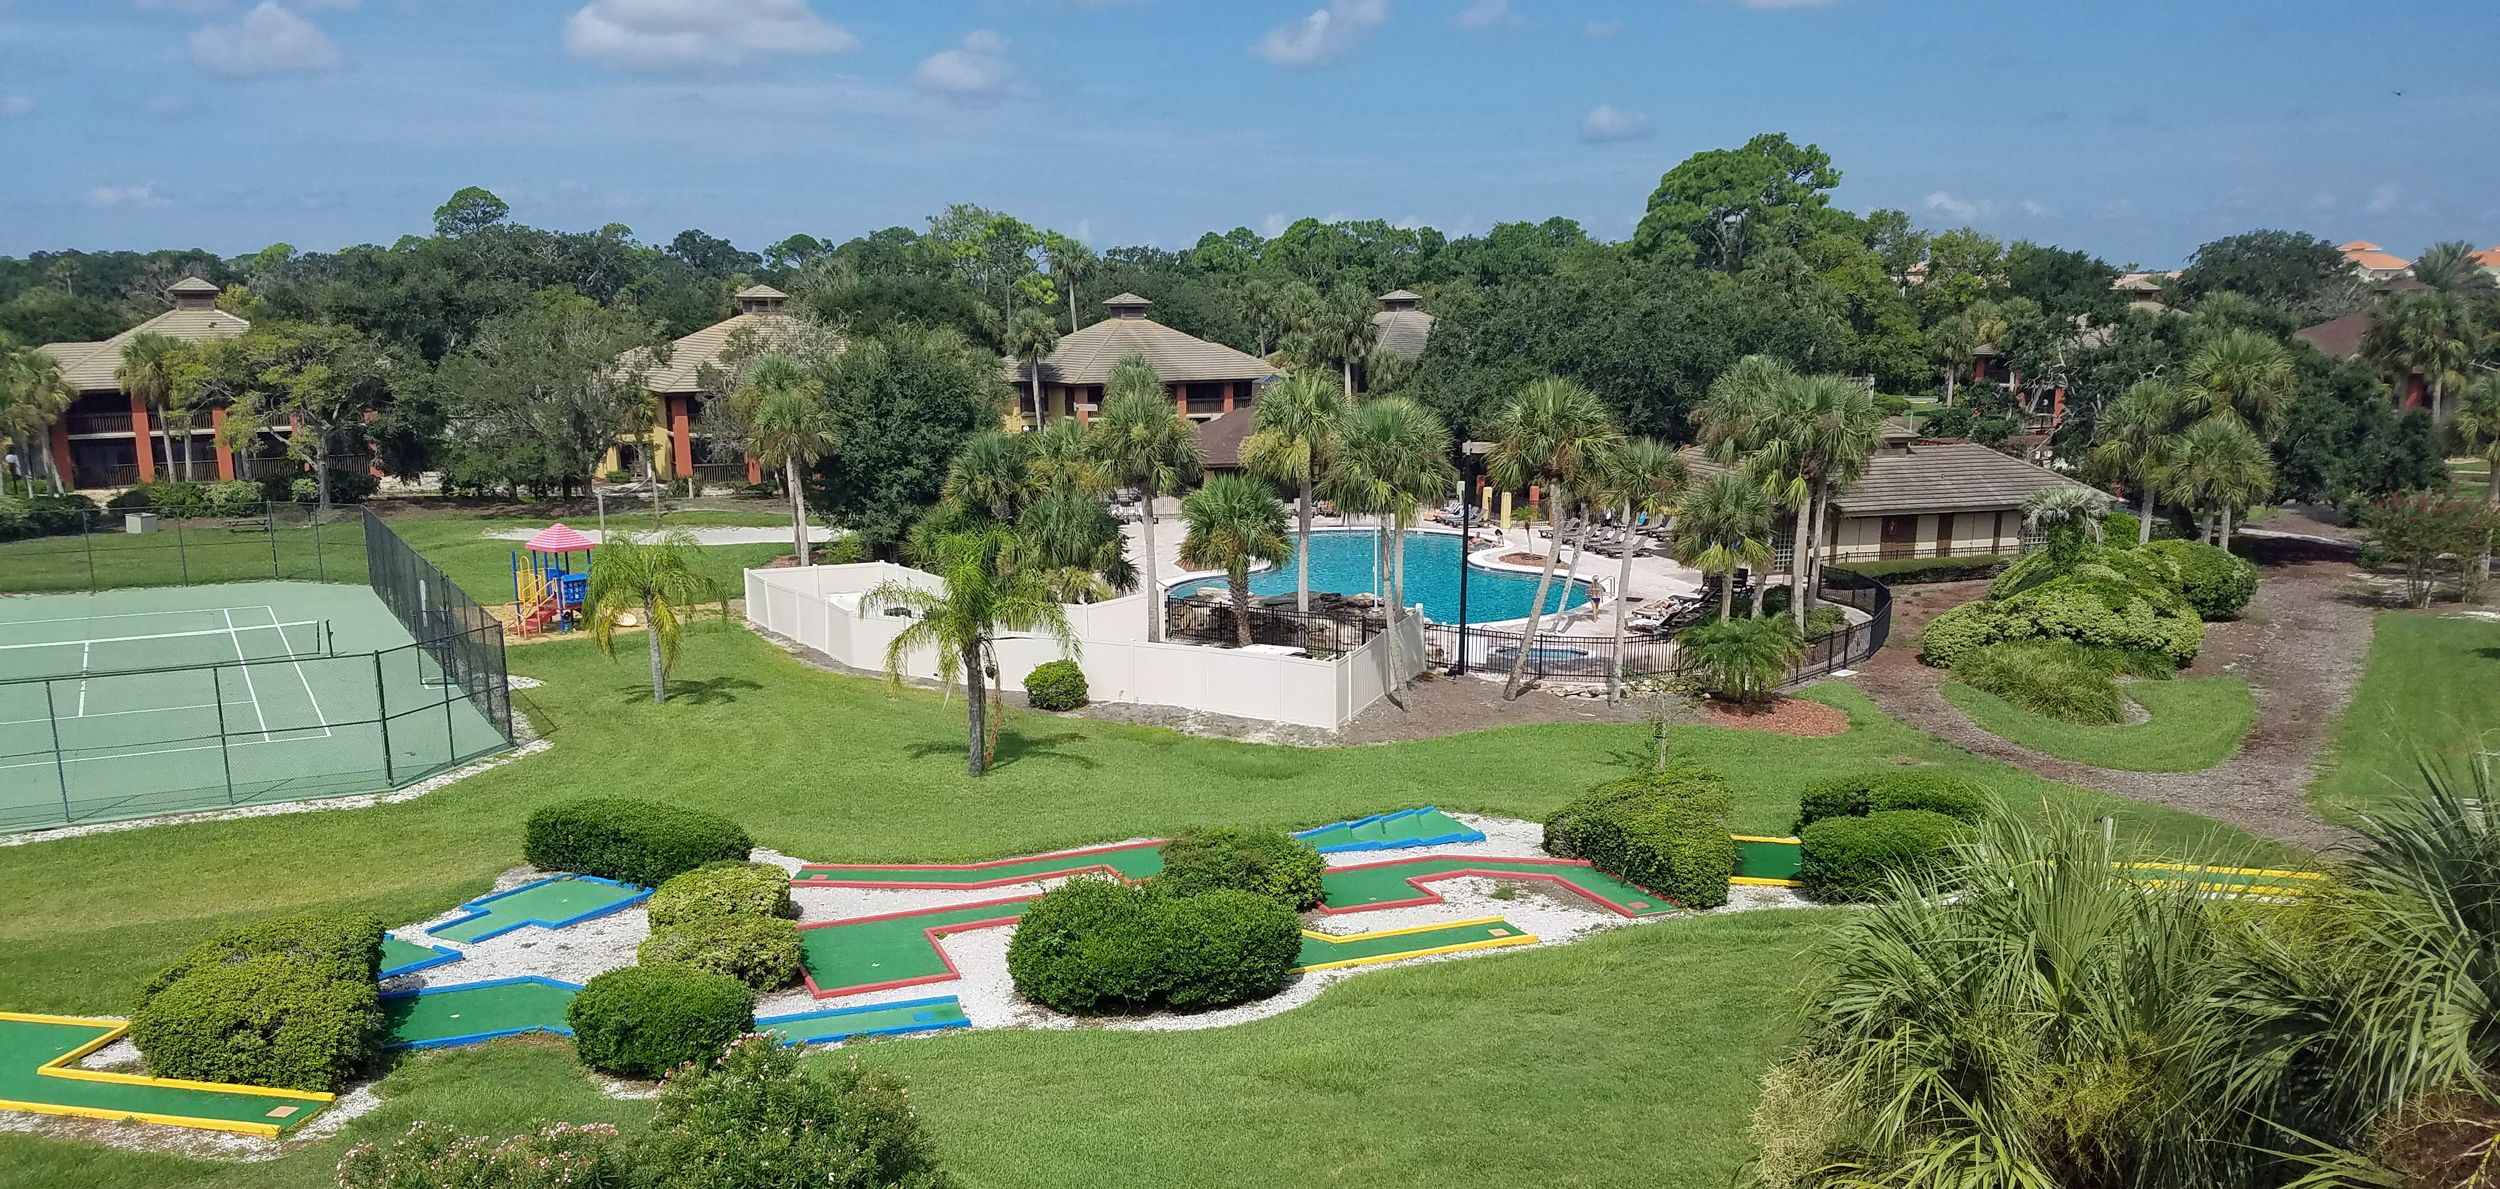 The hidden gem that is Legacy Vacation Resorts Palm Coast